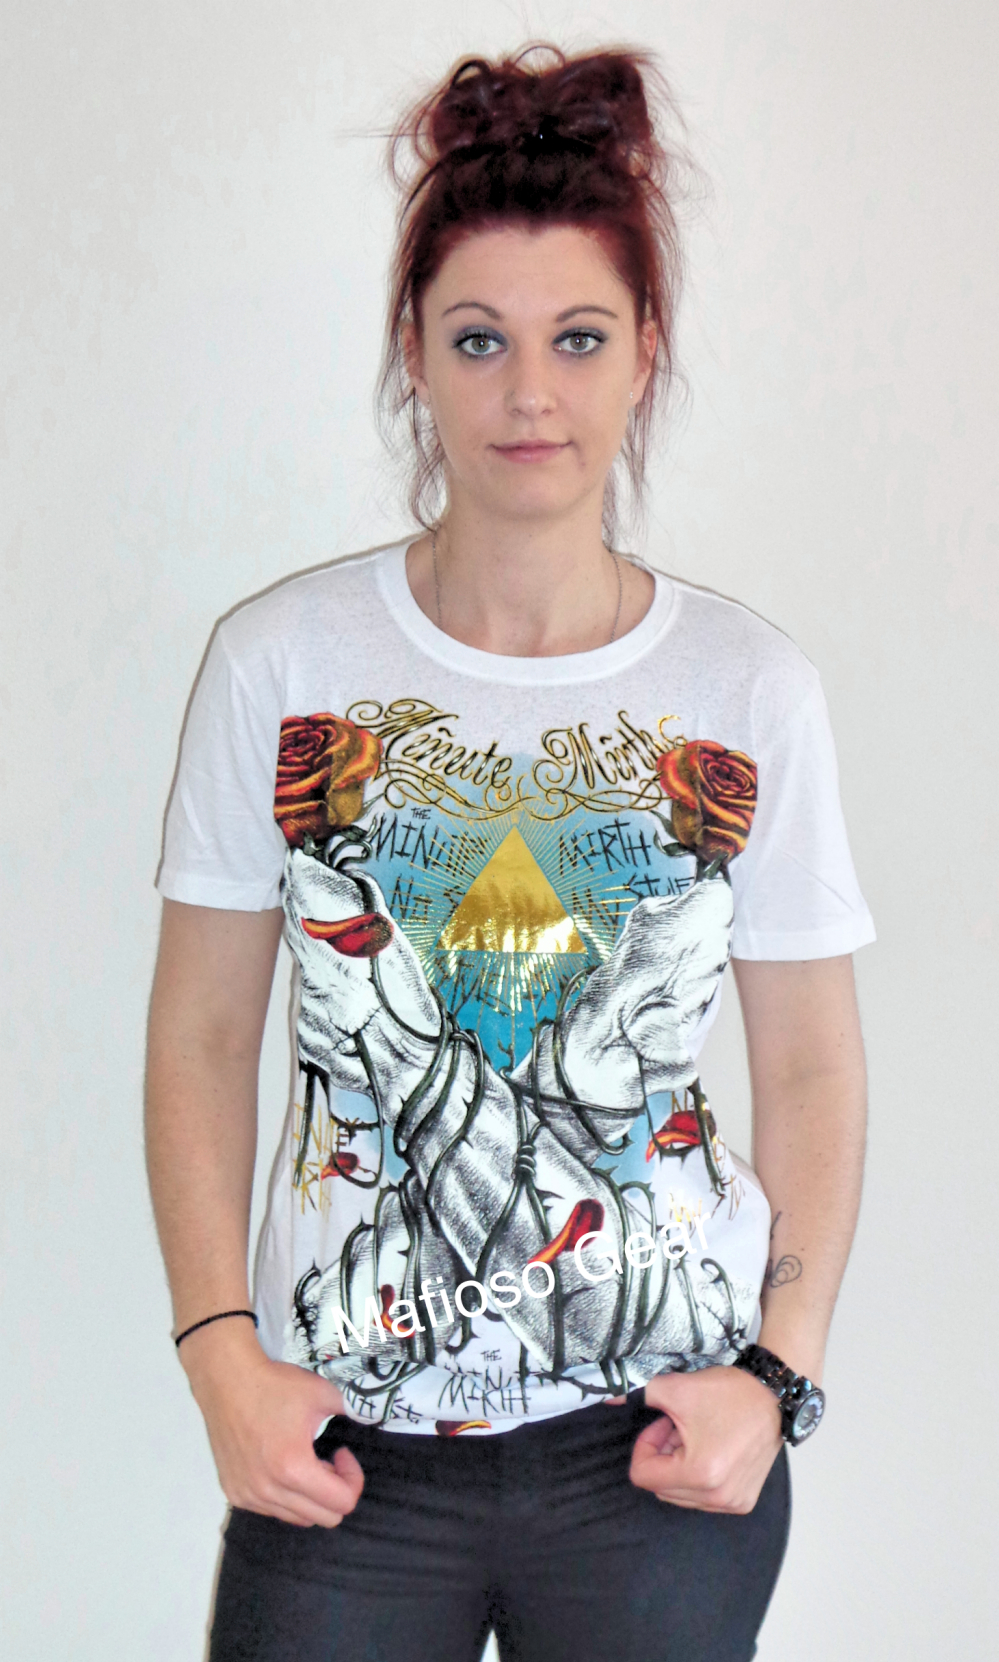 womans_crossed_arms_t_shirt_unisex__t_shirts_5.jpg